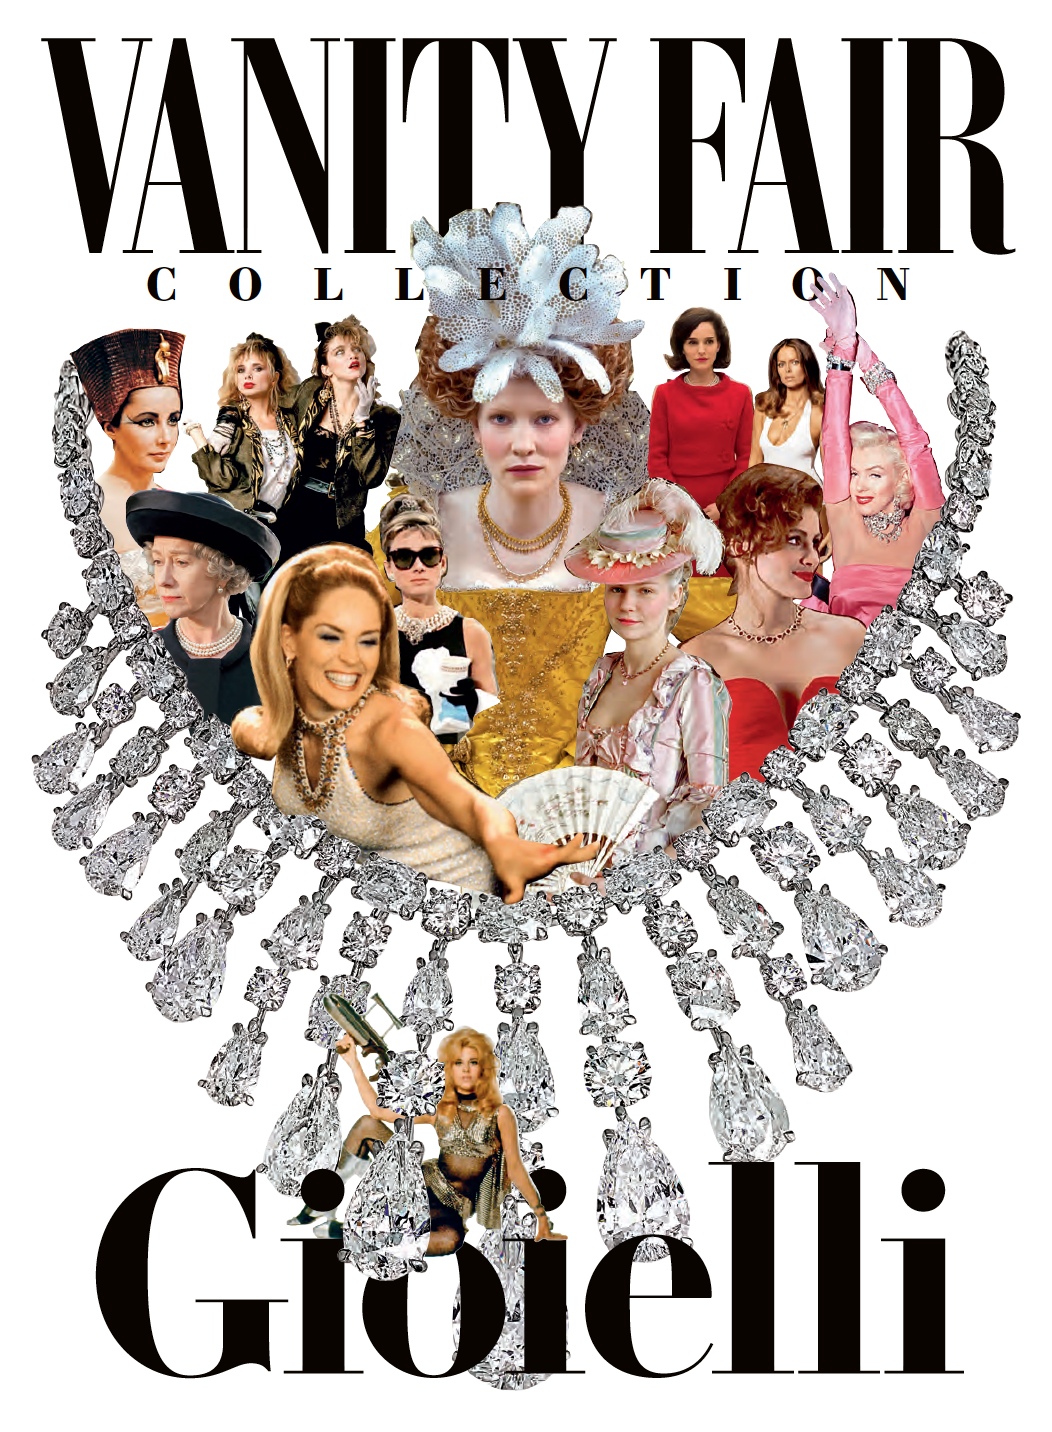 Vanity Fair / Billy Kidd